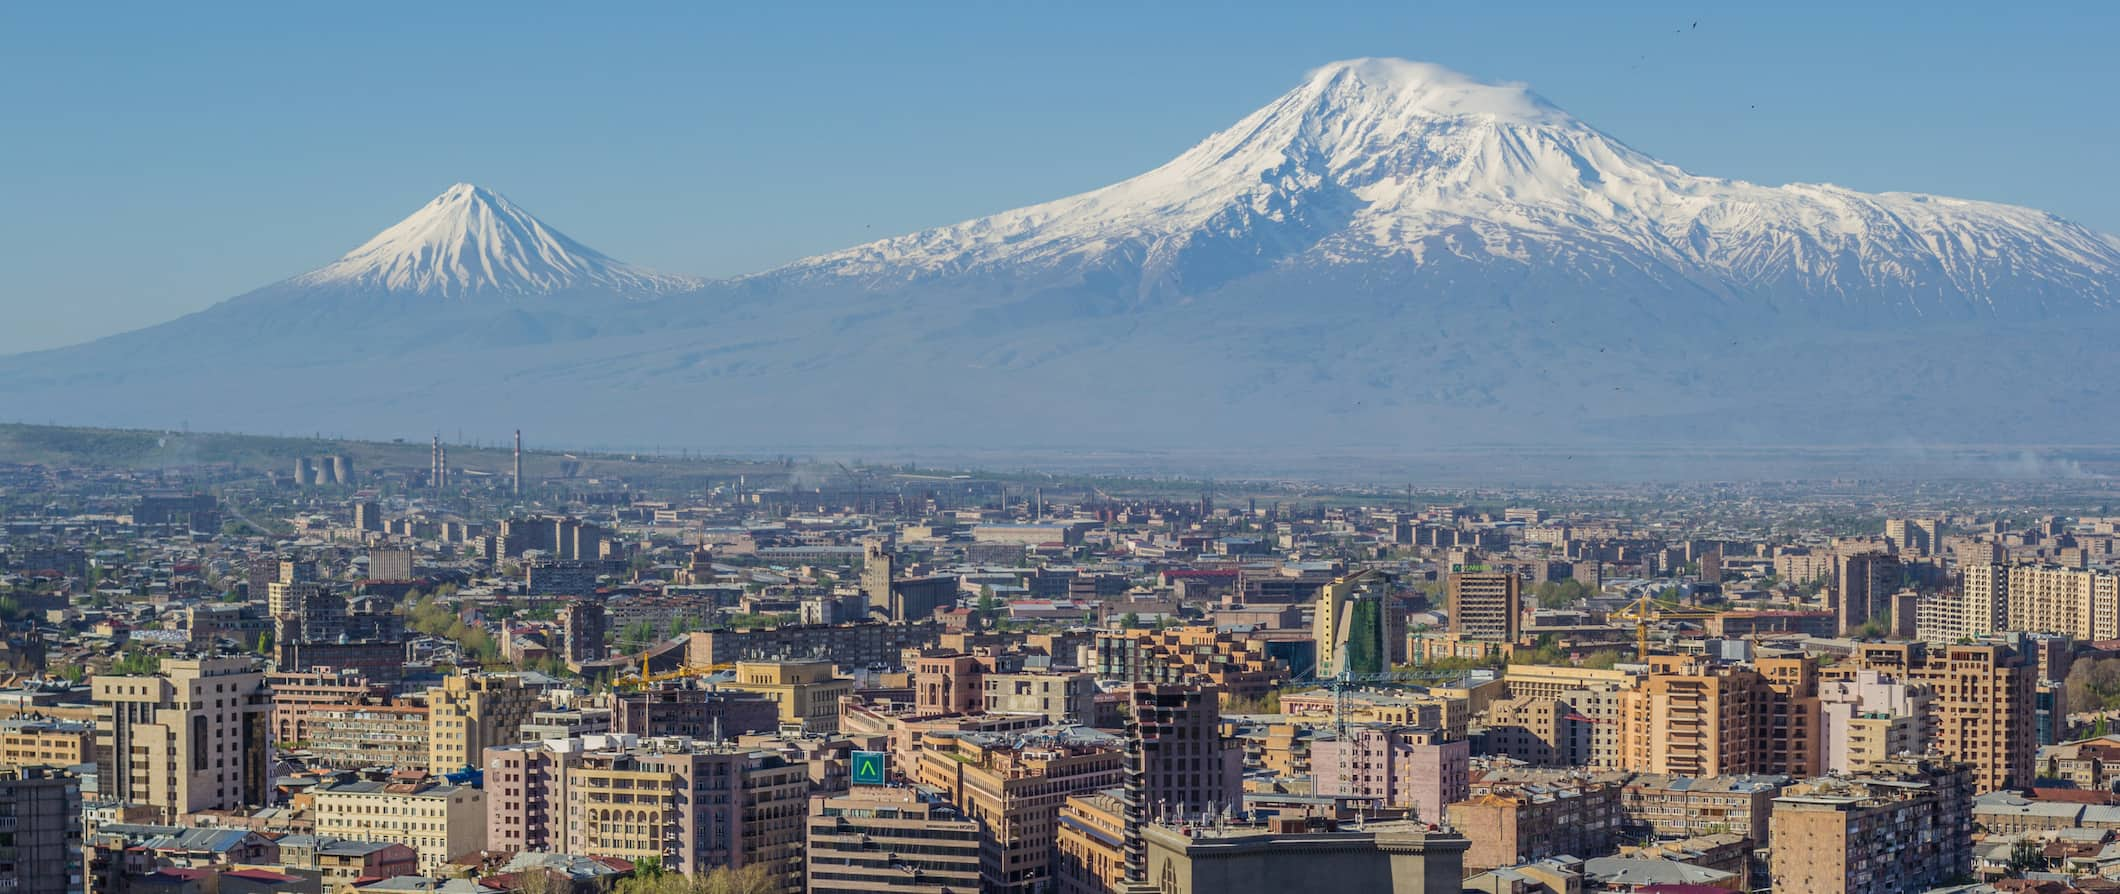 Mount Ararat and the Yerevan skyline. The Opera house is visible in the center - Image Serouj Ourishian